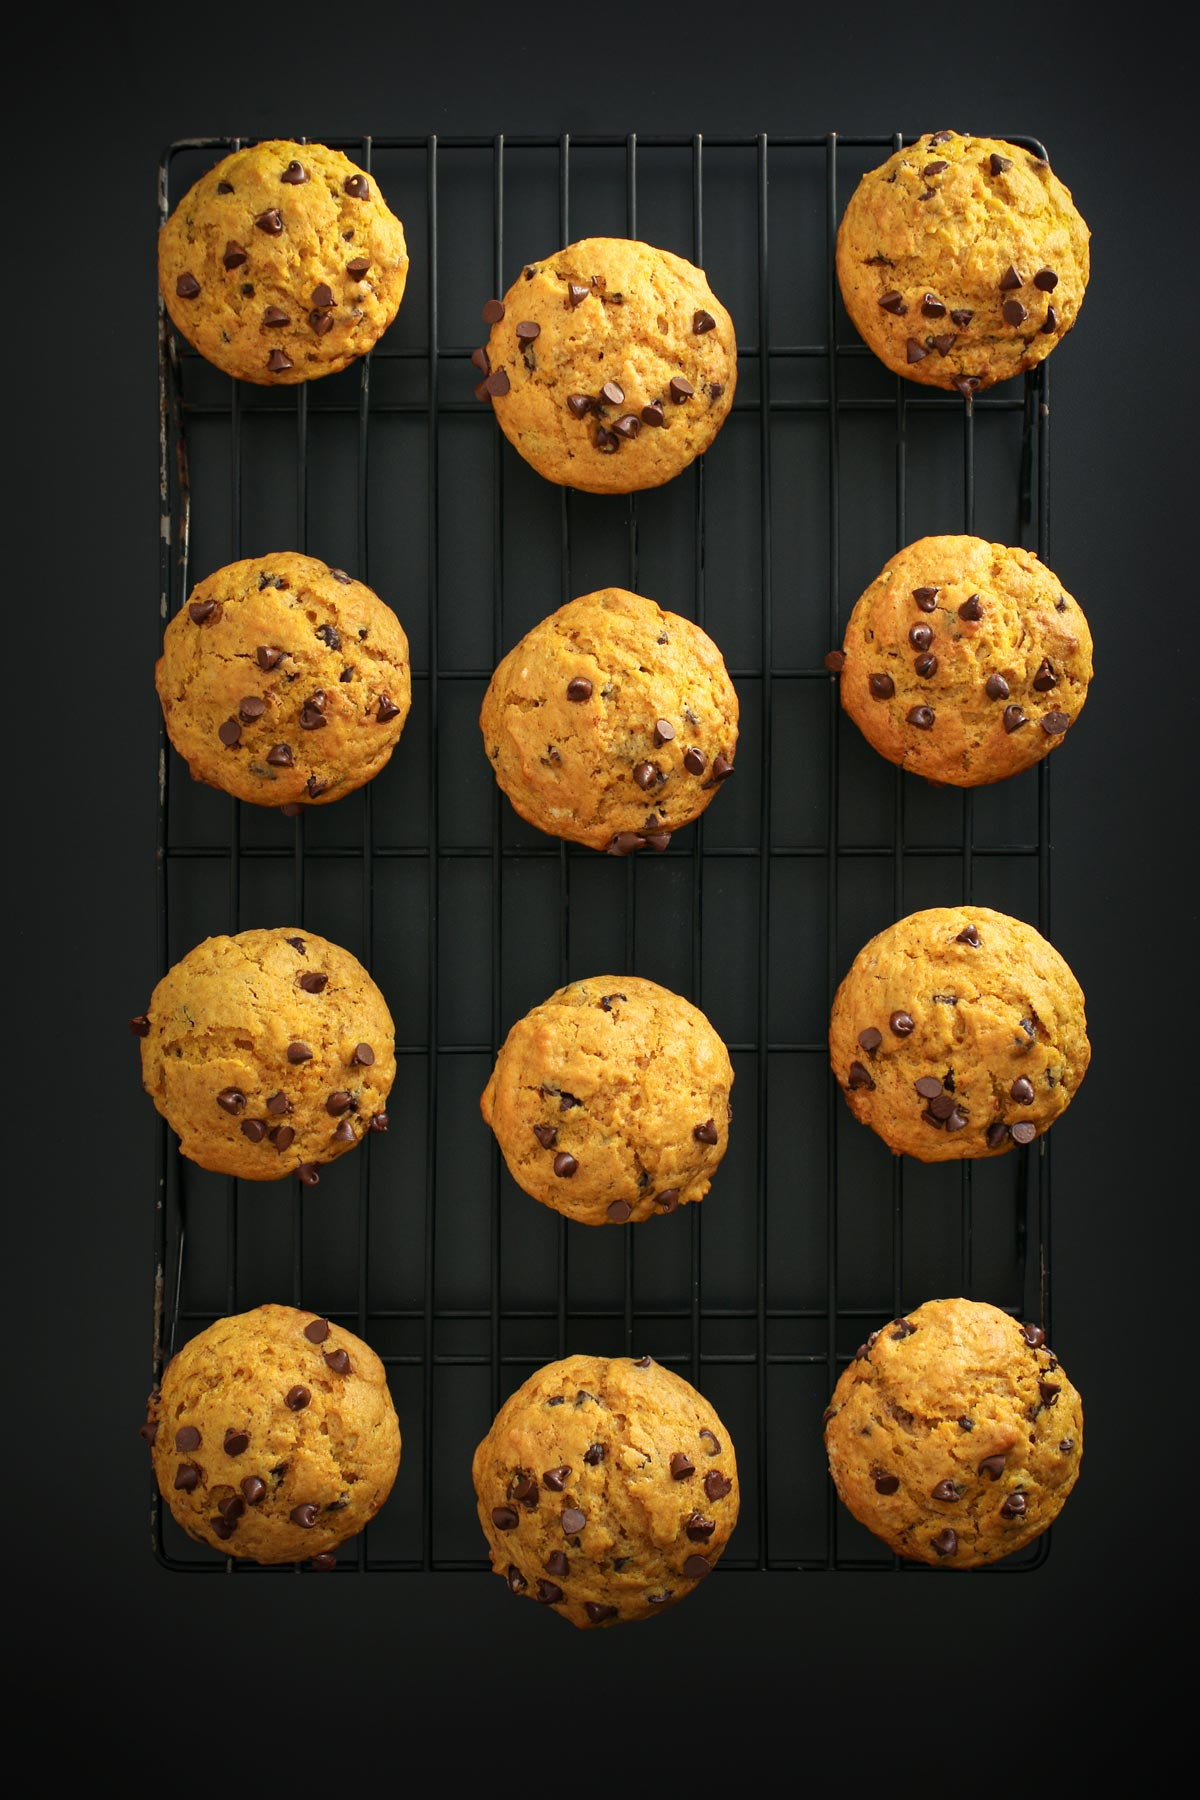 baked chocolate chip pumpkin muffins cooling on rack.